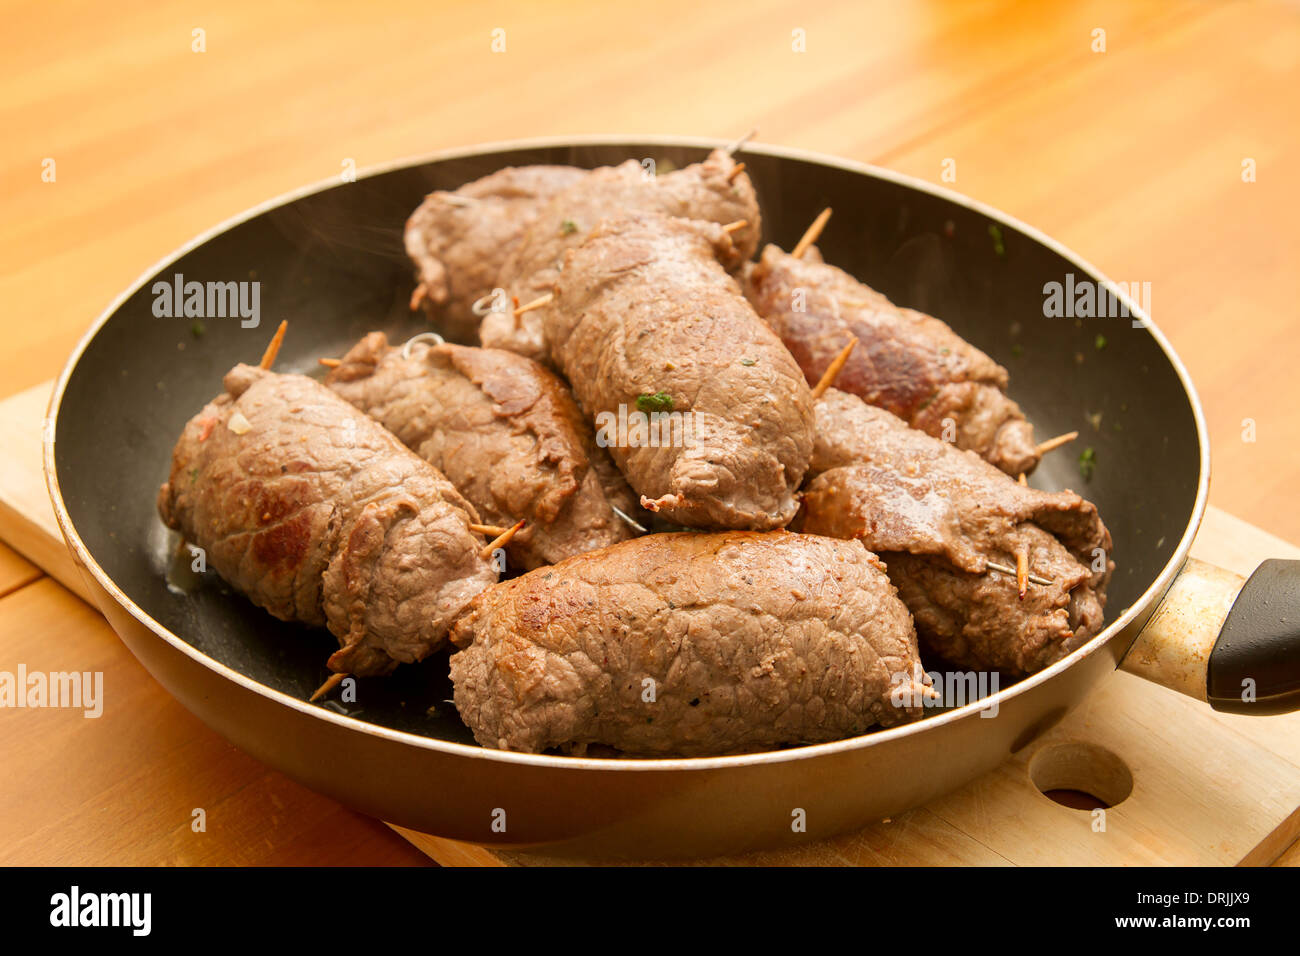 roulades in a pan - Stock Image